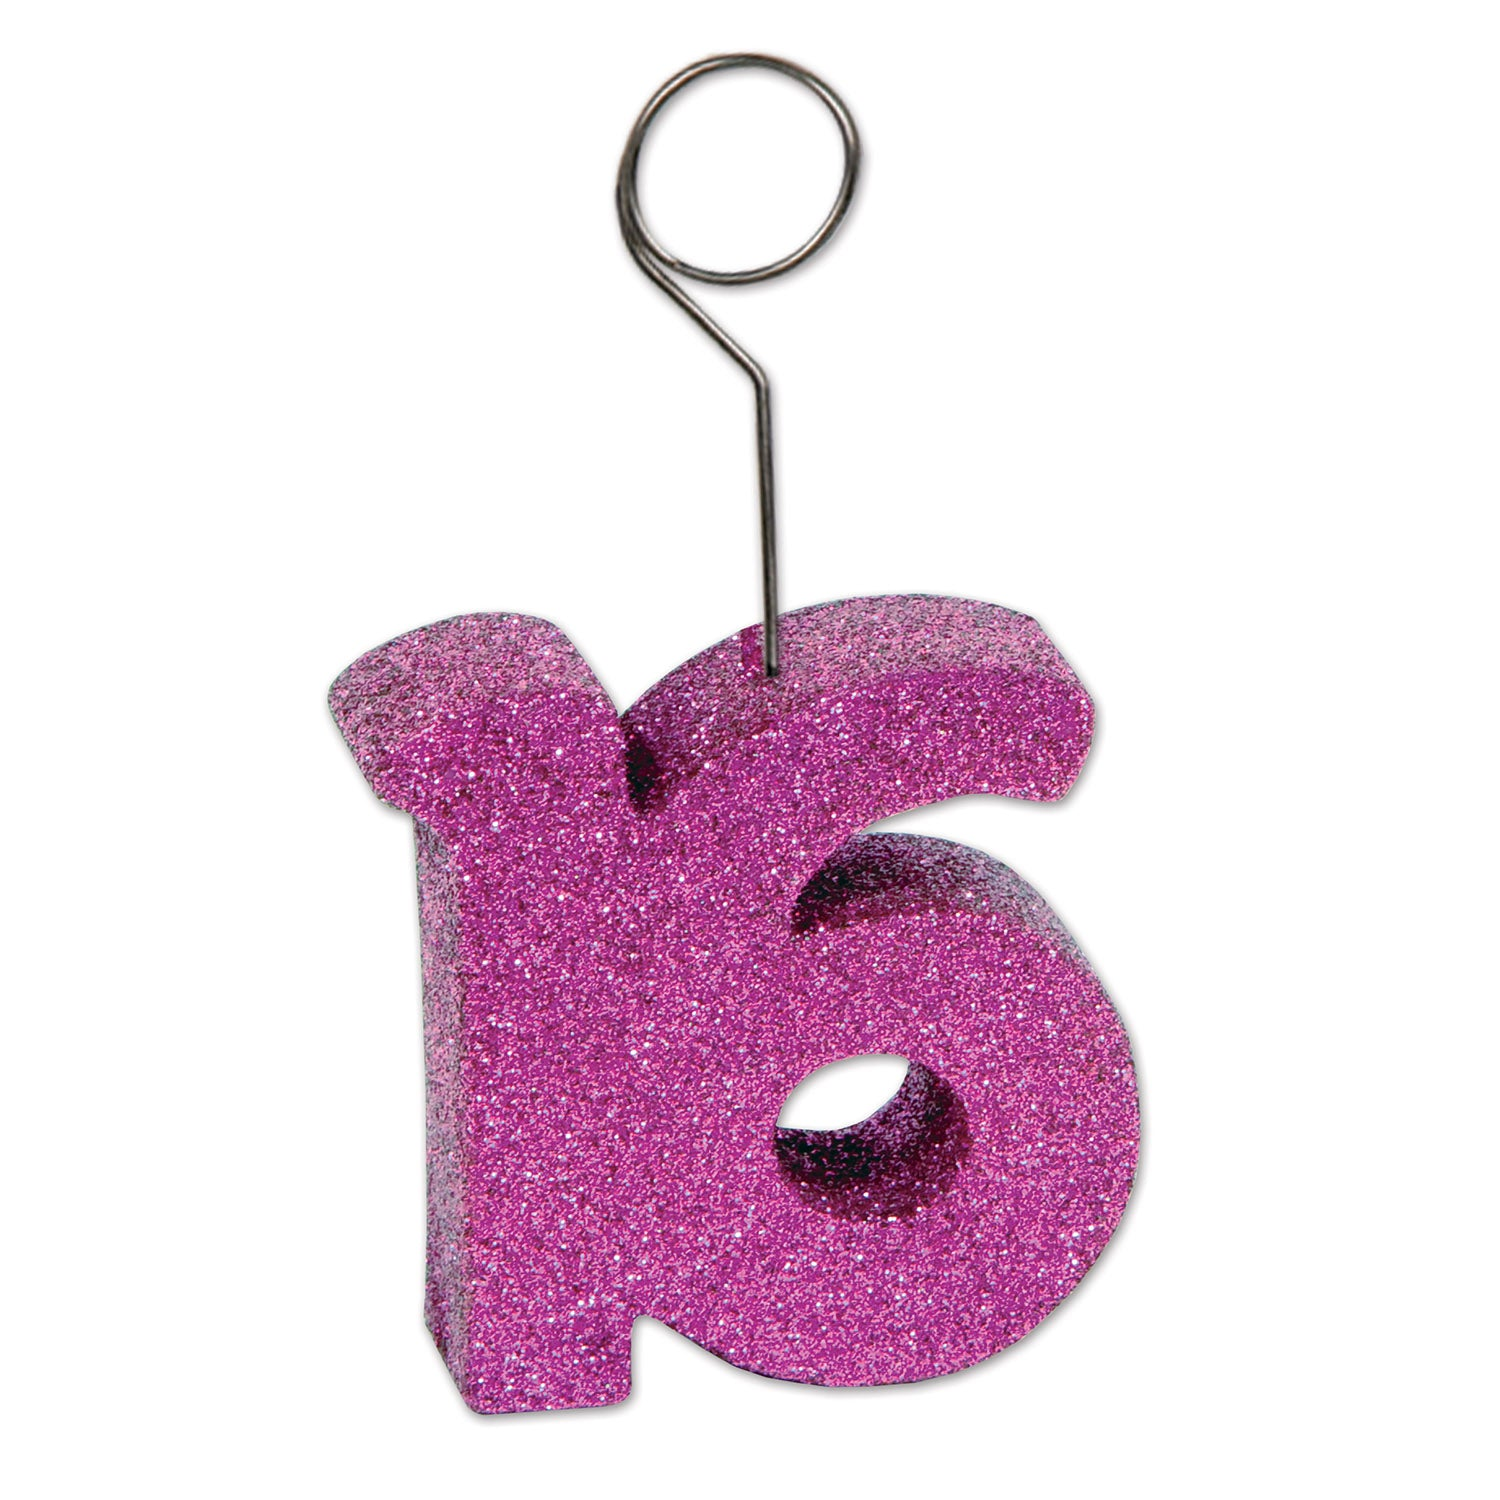 Glittered 16 Photo/Balloon Holder by Beistle - Sweet 16 Birthday Decorations